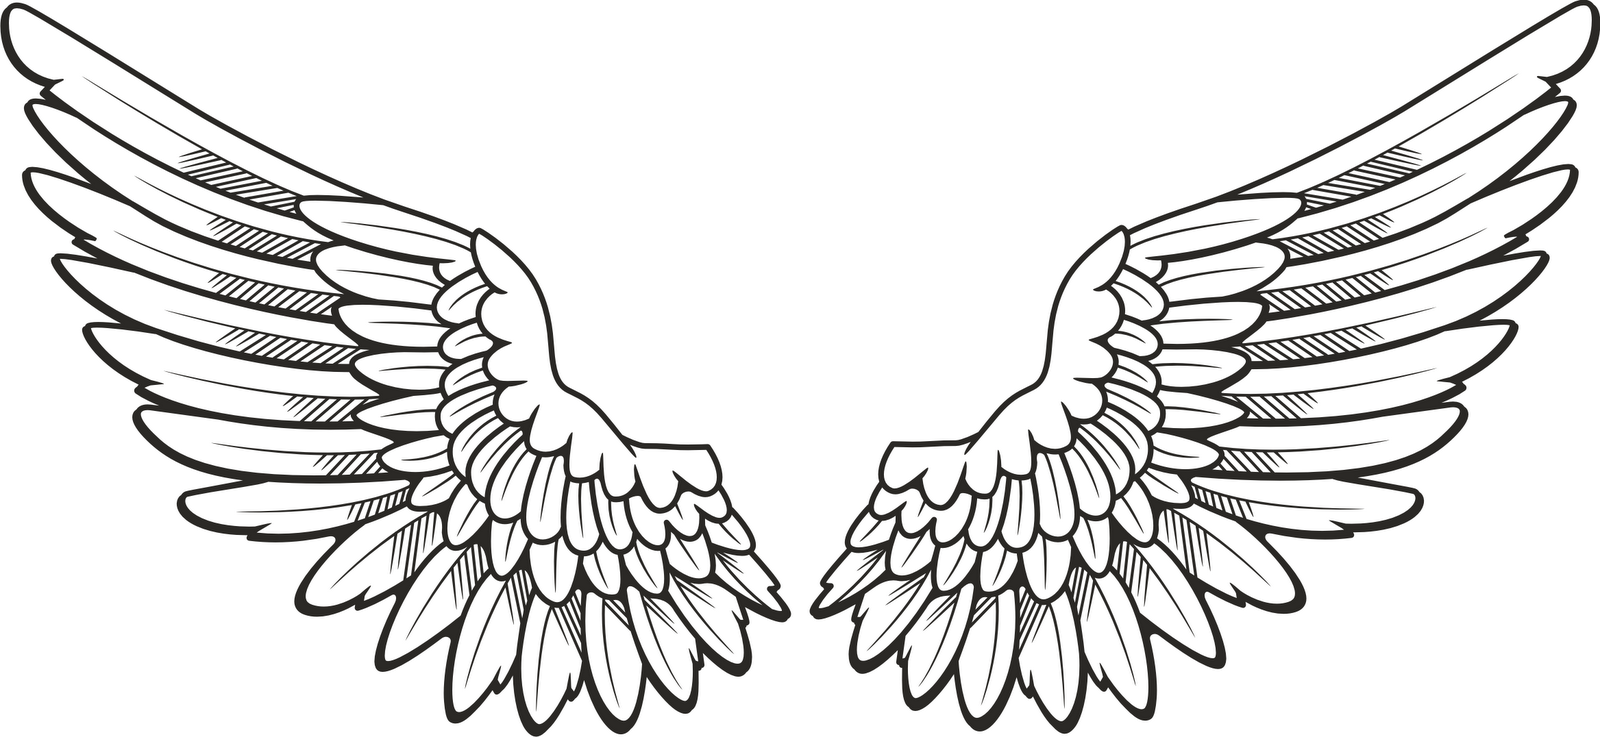 r minecraft wings feathers pinterest tattoos wings and